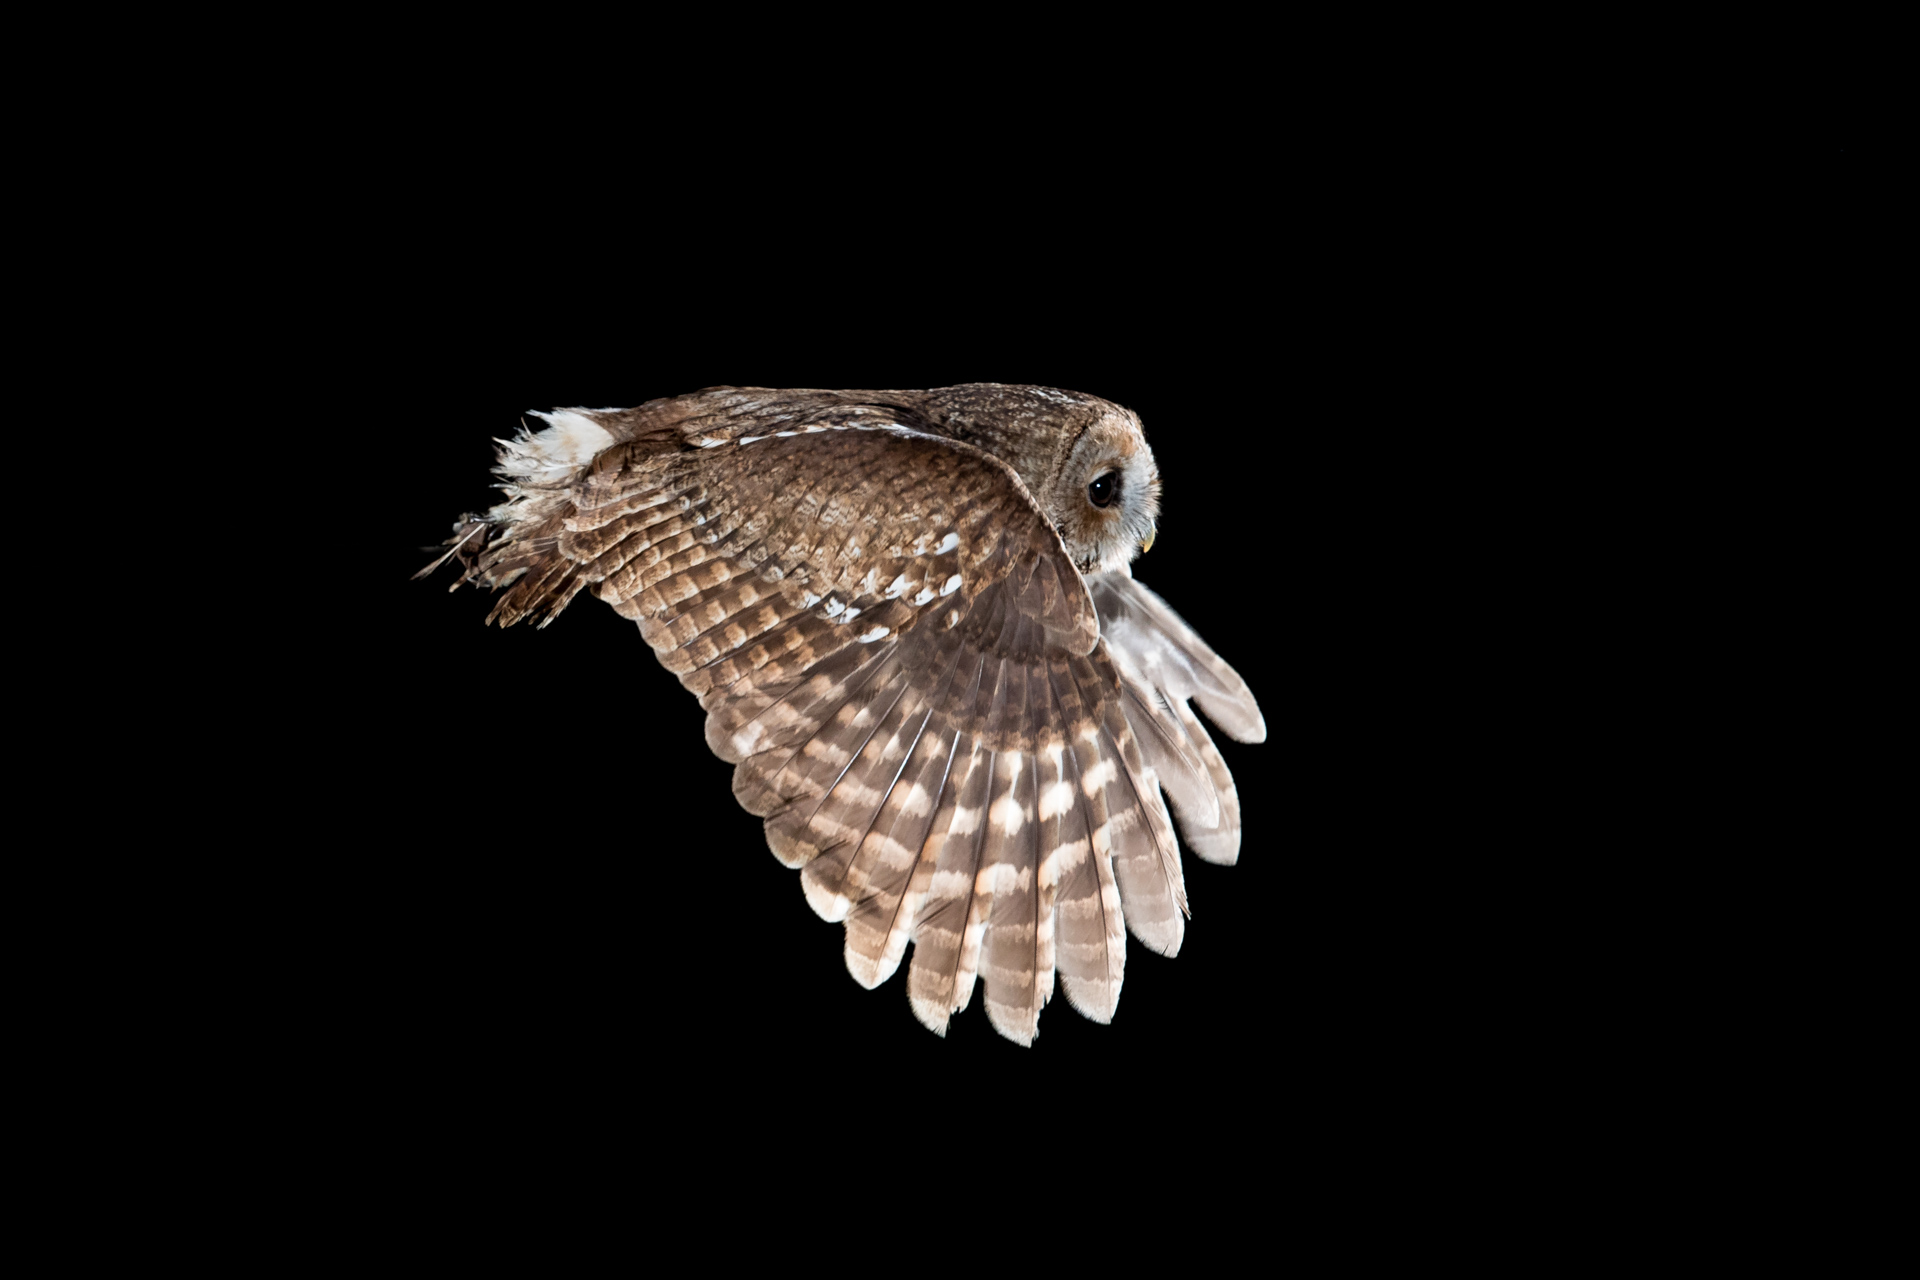 tawny owl flying backlight flash _A8I6270.jpg